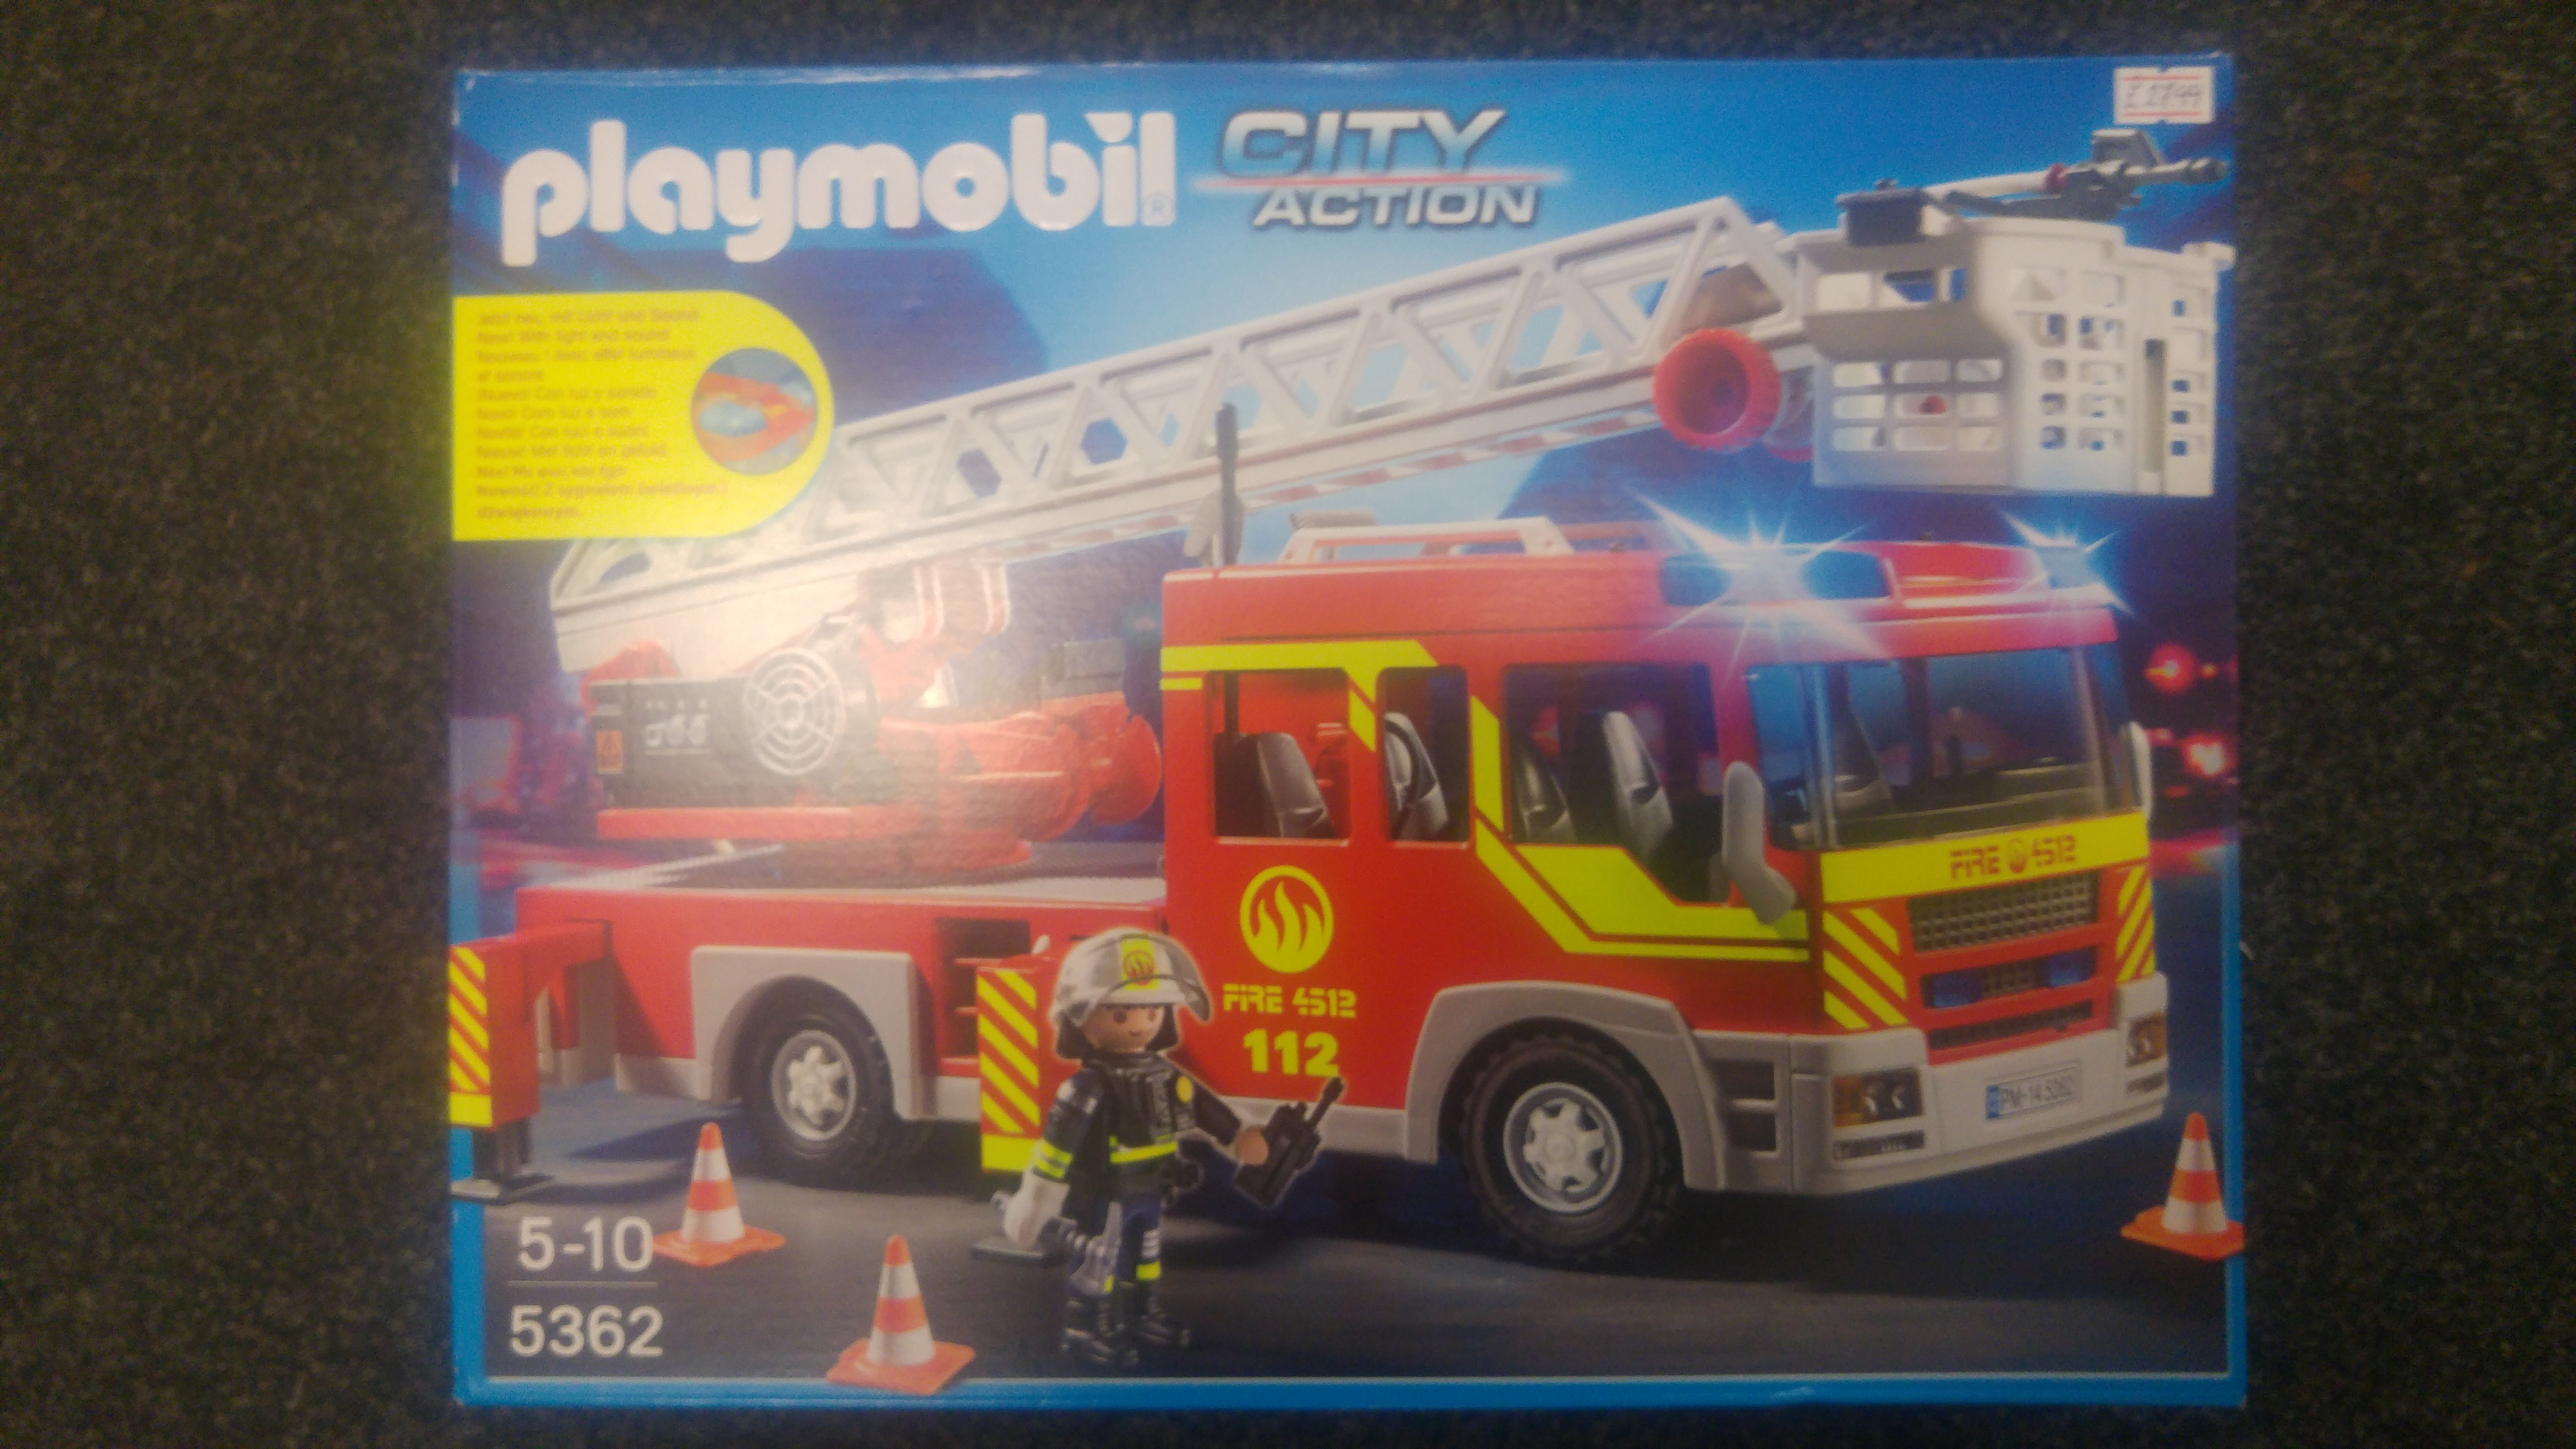 5362 Playmobil City Action Fire Engine